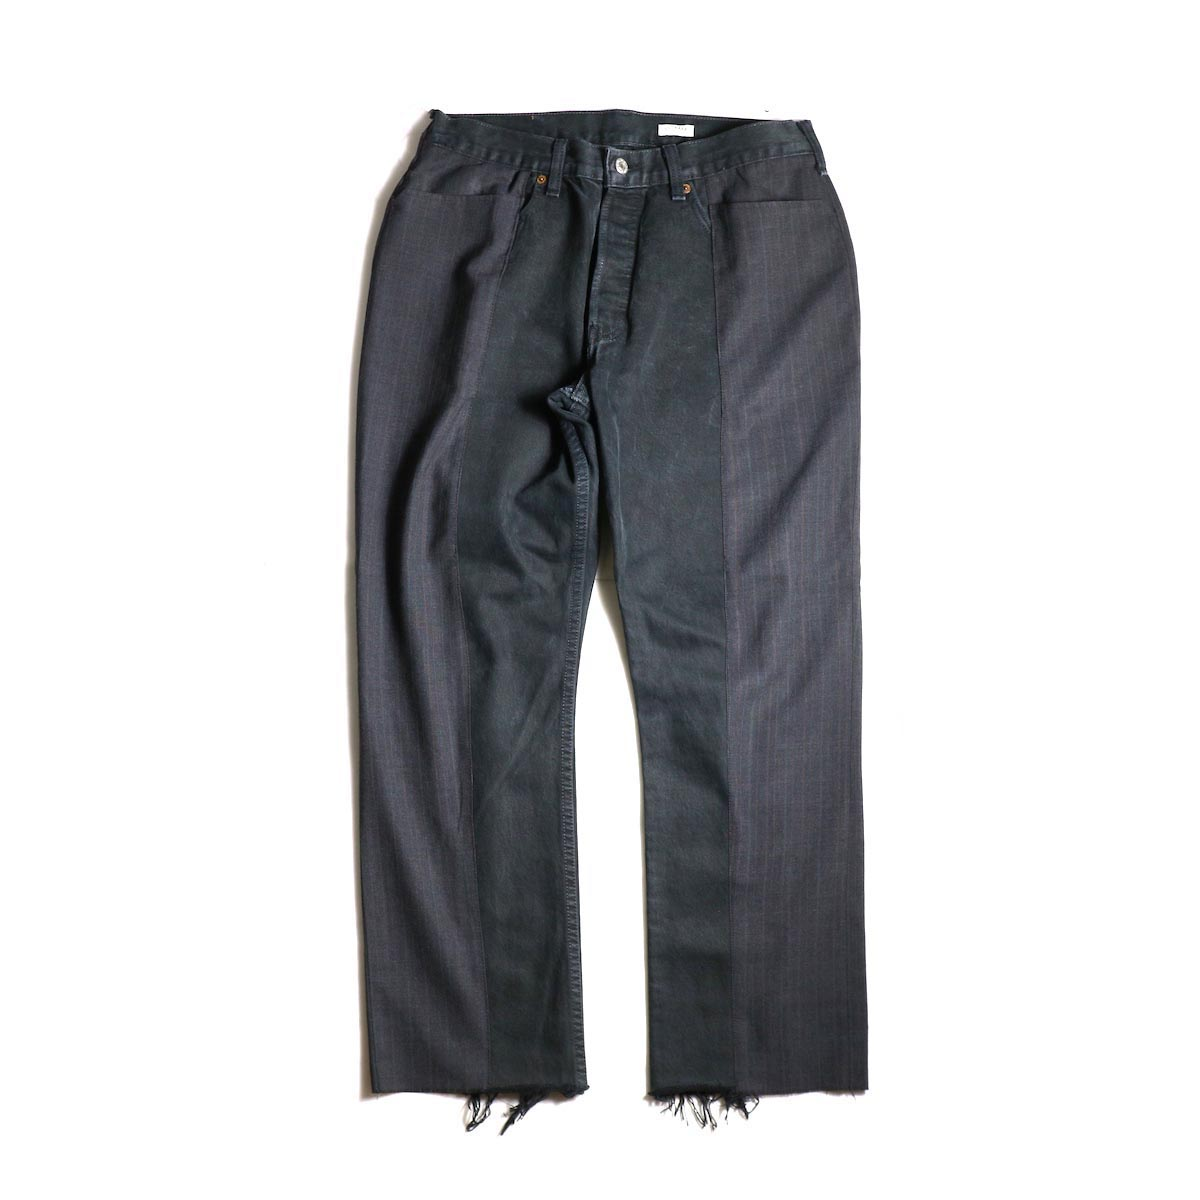 OLD PARK / Docking Jeans Black (Msize-A)